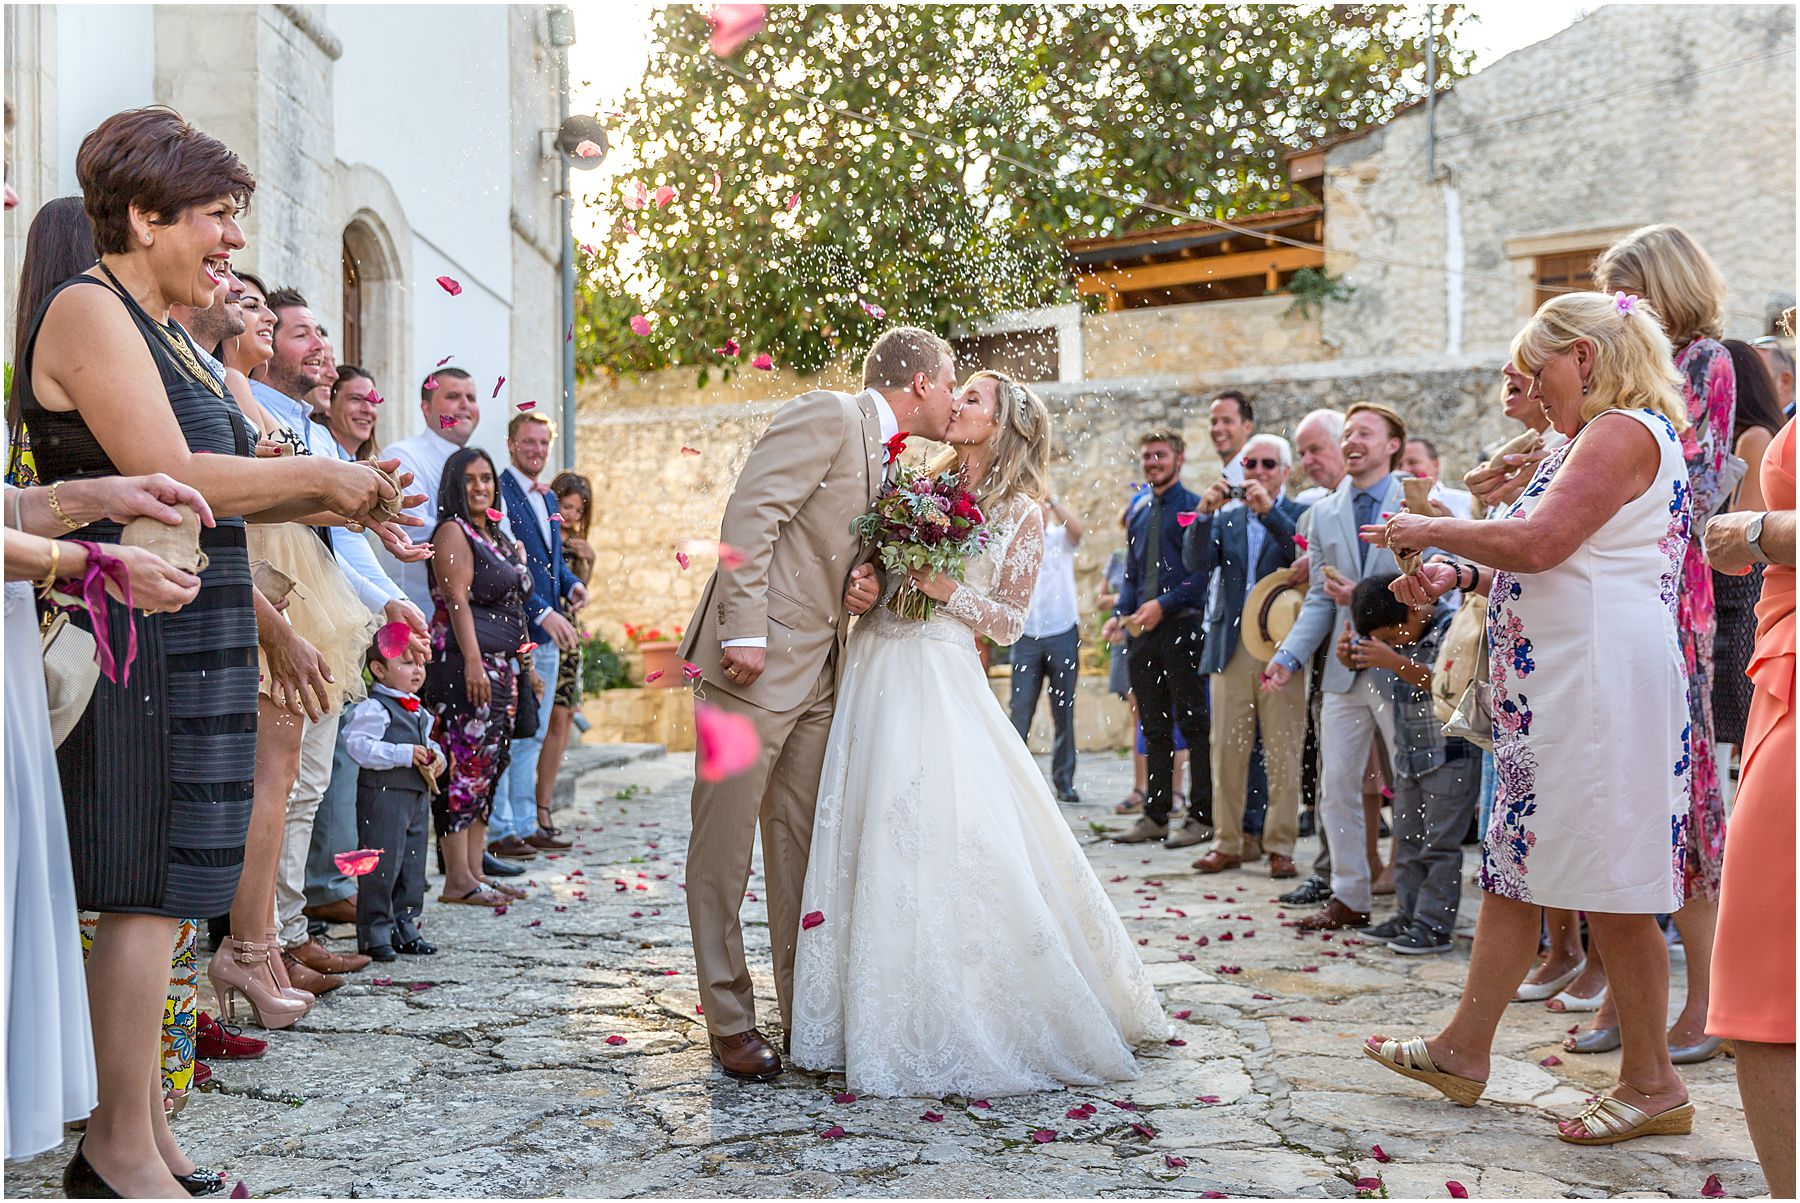 Lofou Village Wedding – Joanna & William